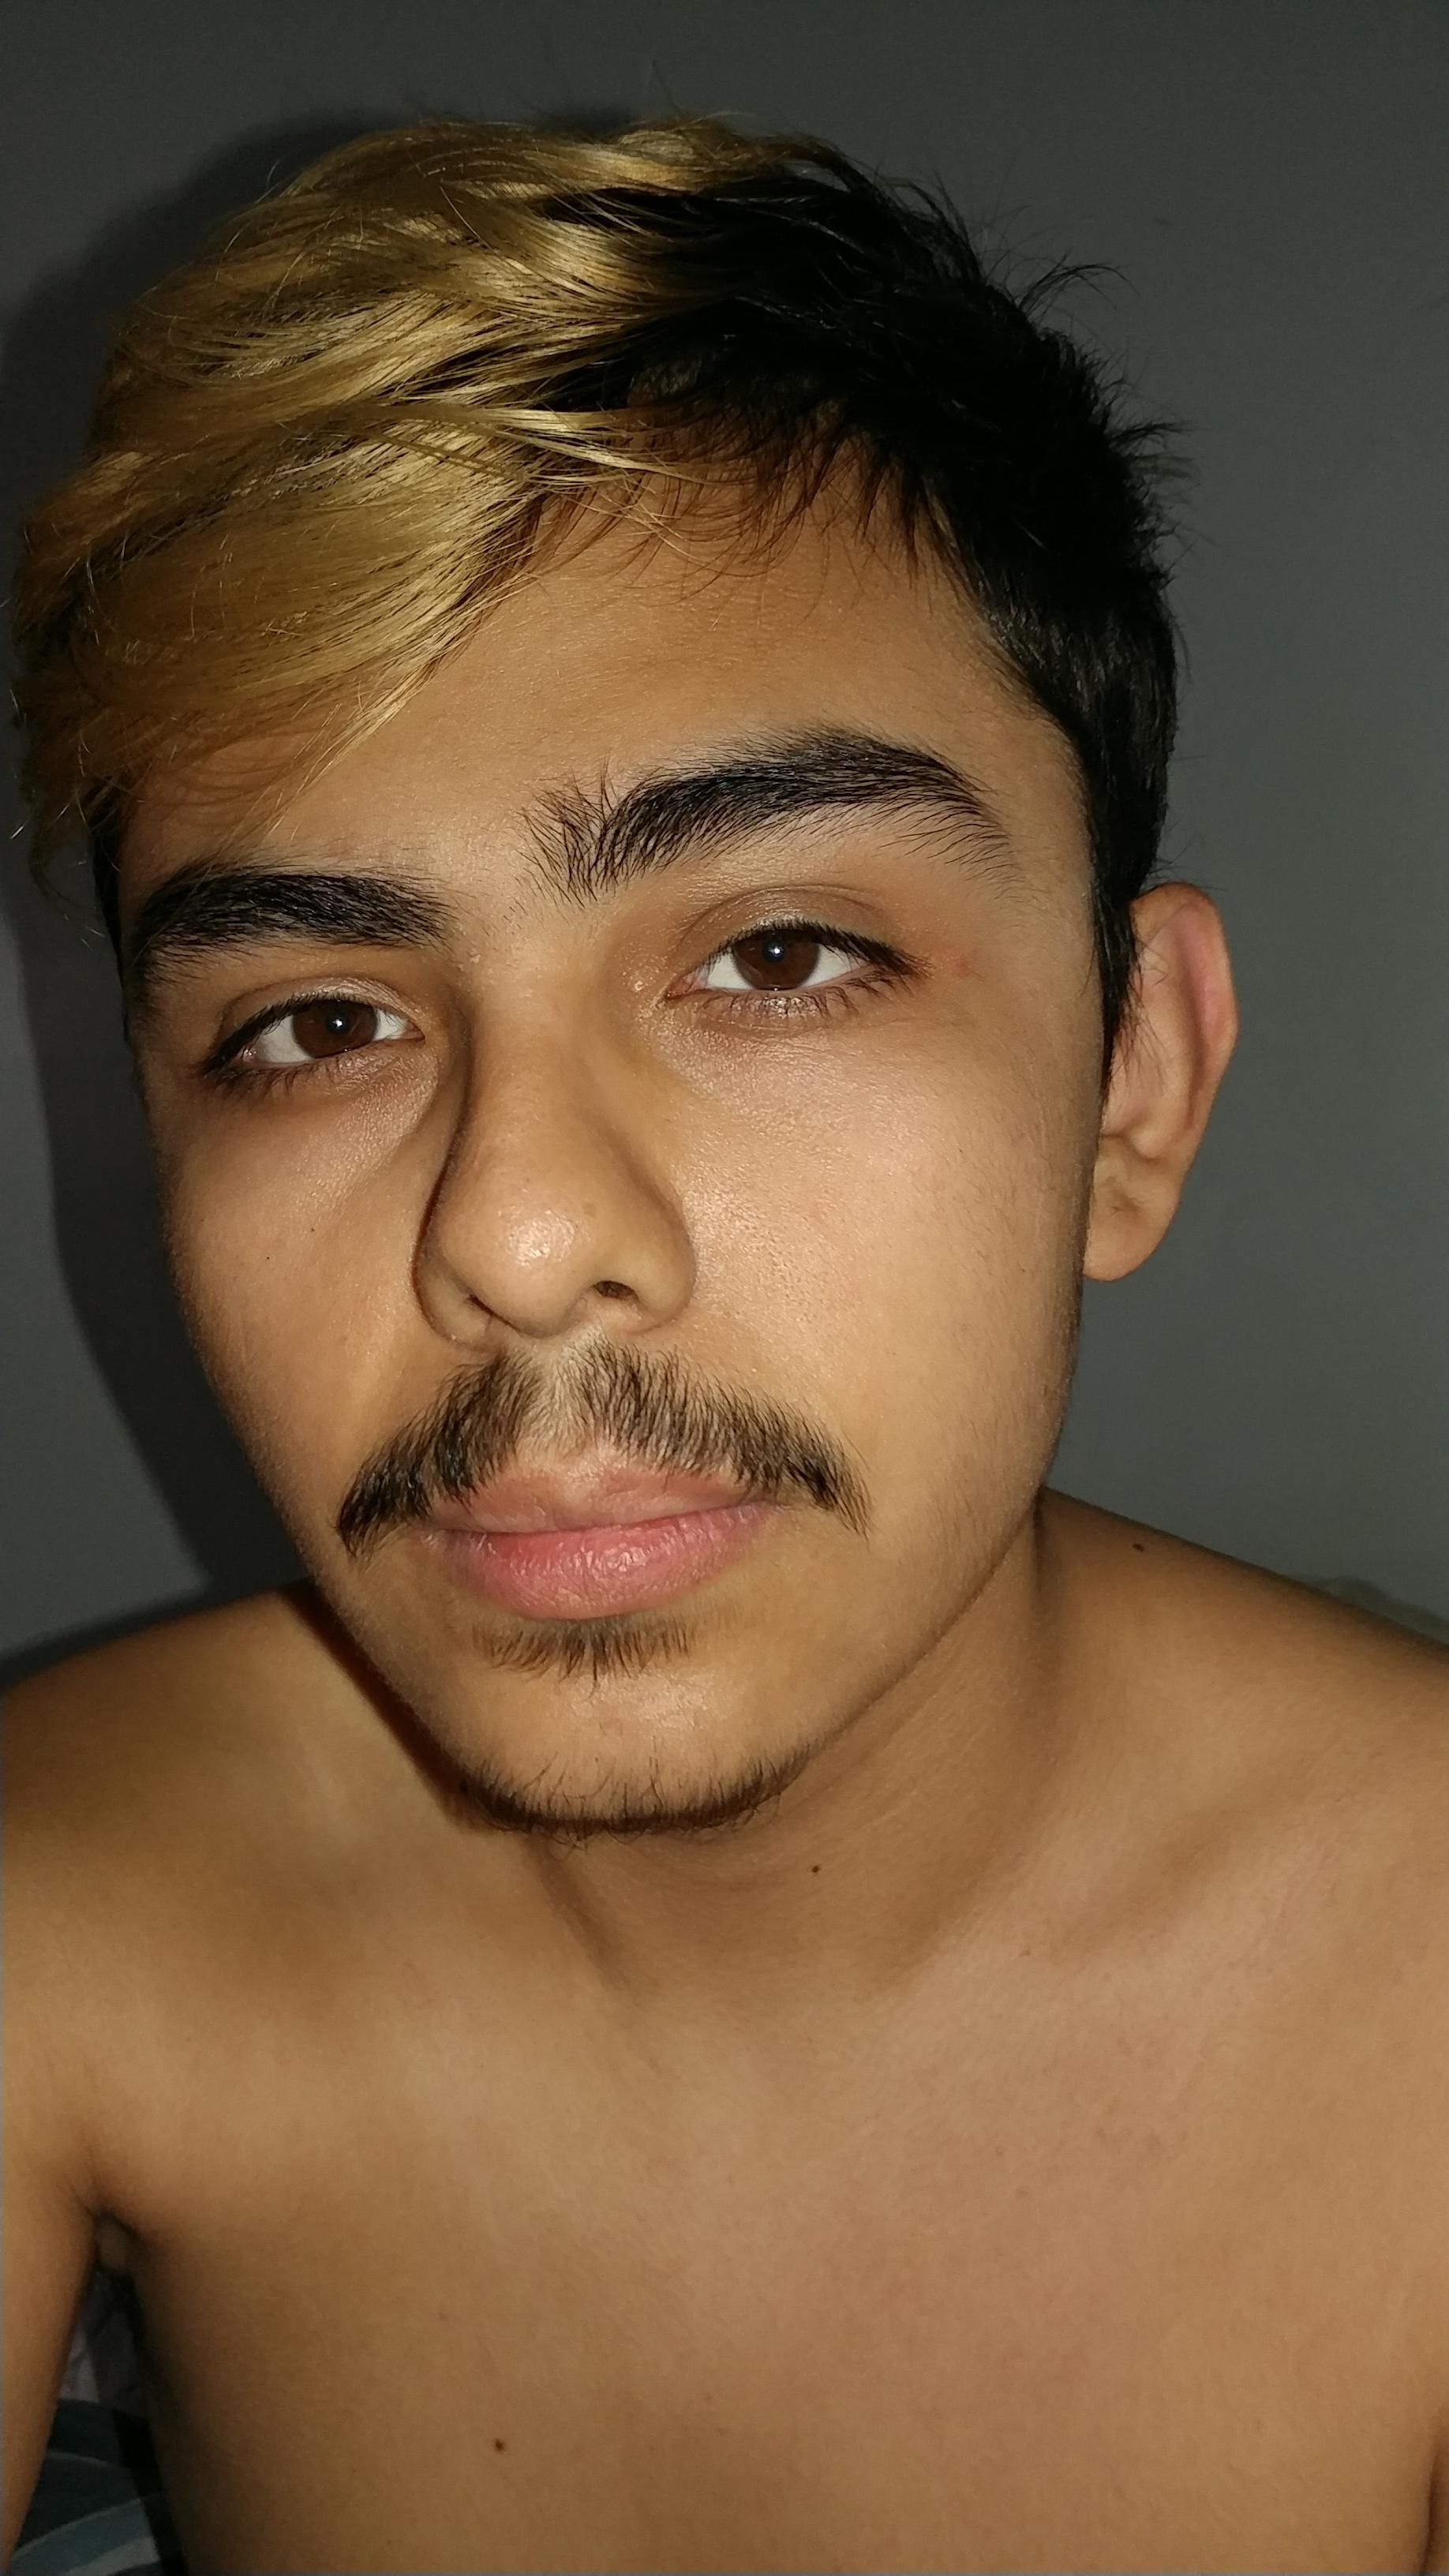 Looking To Get A Haircut And Get Rid Of The Blonde Need Help With